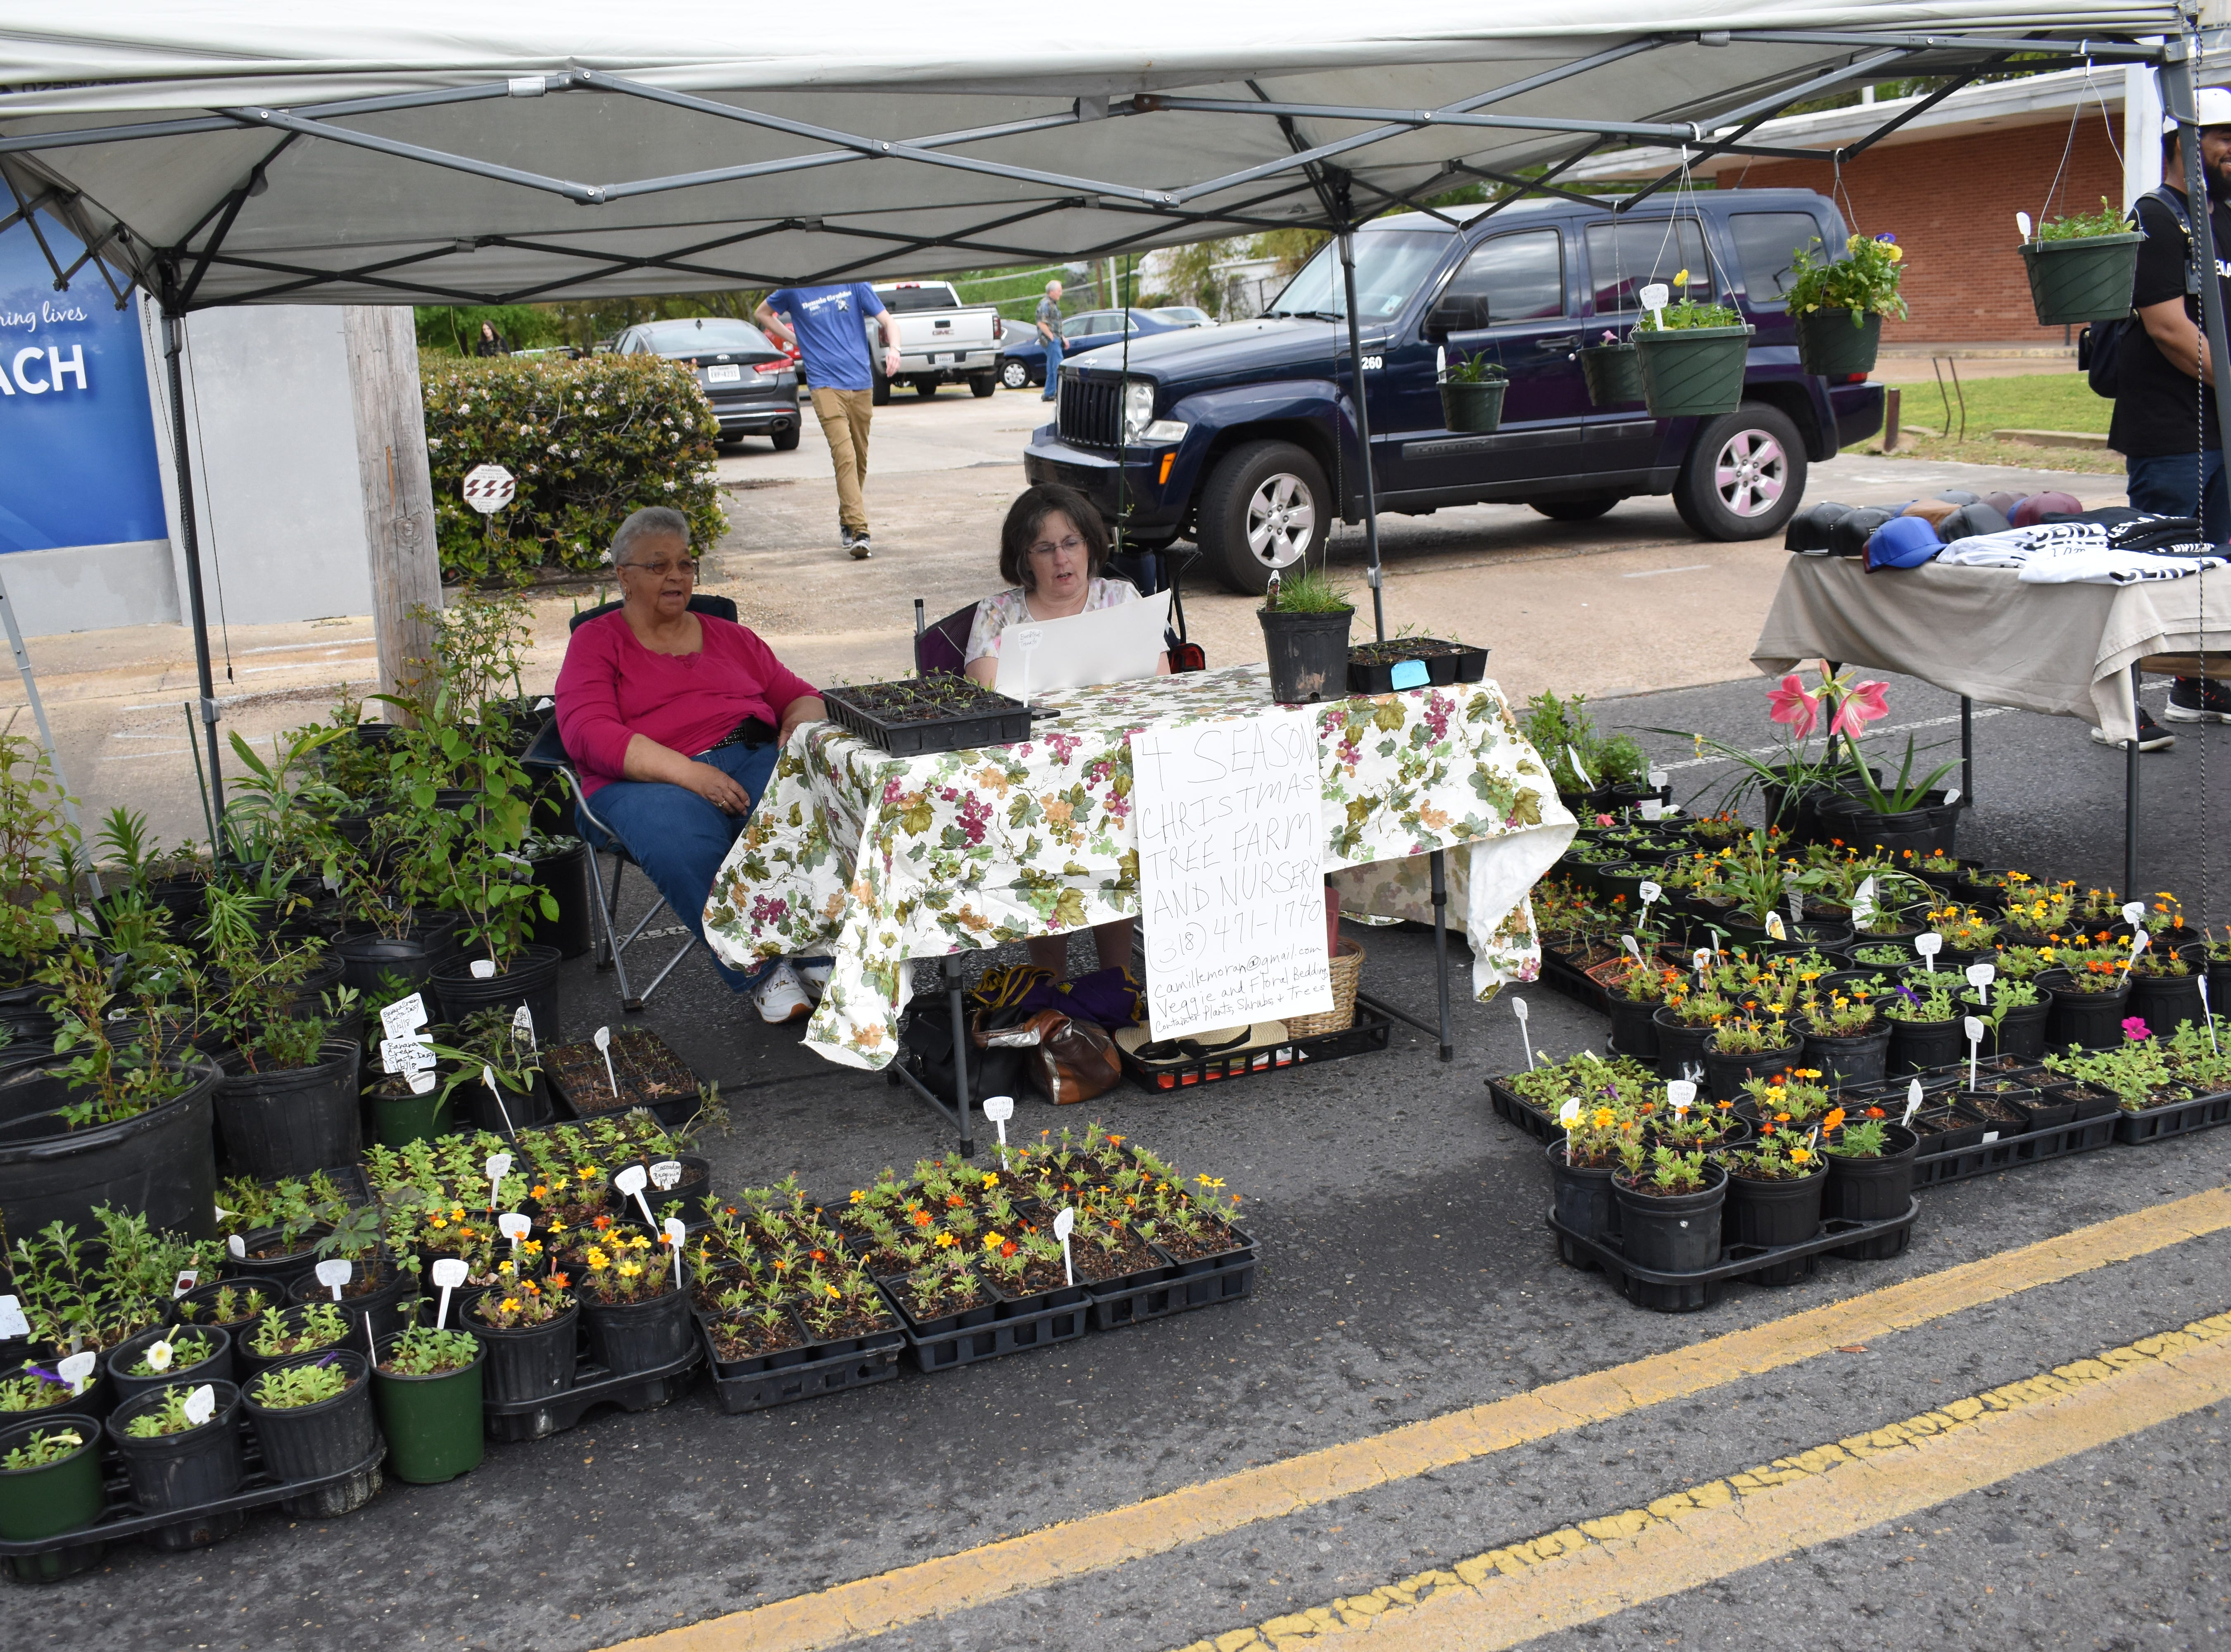 The first 5th Saturday on On Main was held Saturday, March 30, 2019 on Main Street in downtown Pineville. The area for the new market extends from Shamrock Street to past the Main Street Community Center. The market will take place from 9 a.m. to 2 p.m. during months with a 5th Saturday. The upcoming markets will be in June, August and November. The new event features live music, food and vendors selling various products and crafts. 5th Saturday on Main is sponsored by the City of Pineville and the Pineville Downtown Development District.